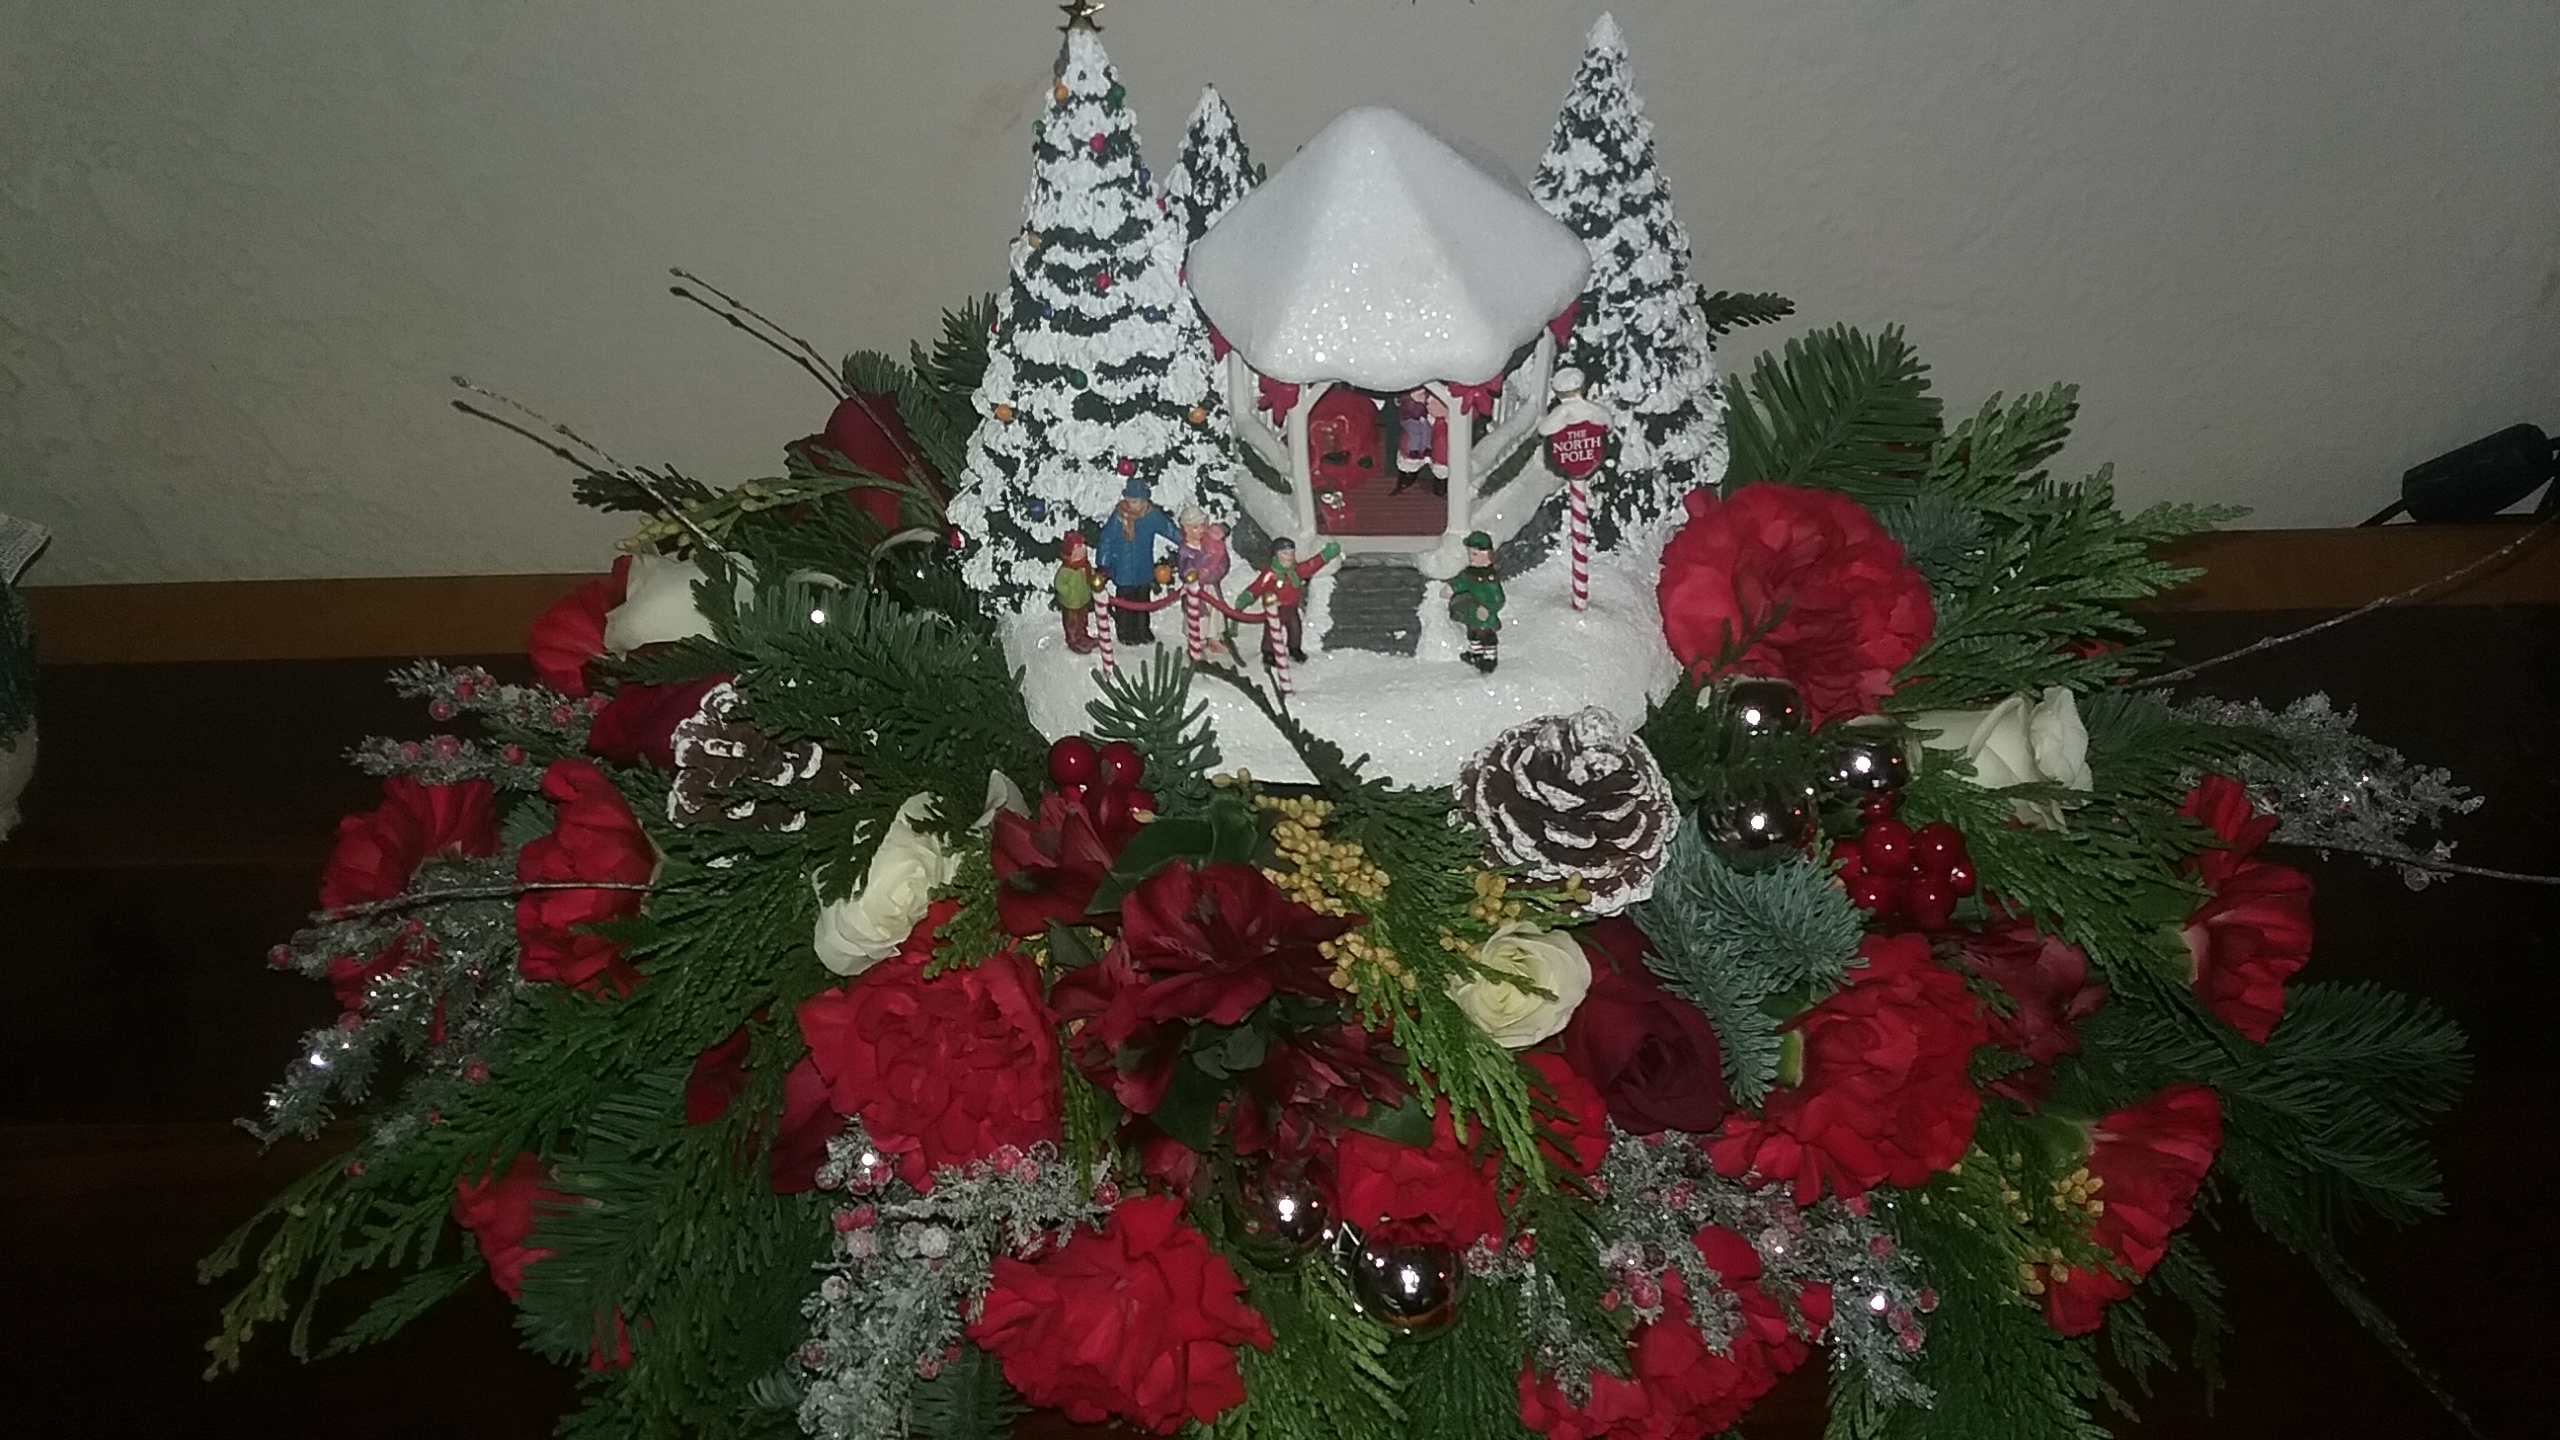 Teleflora Christmas Containers 2020 Can't Be There This Holiday Season? Deliver Yourself with